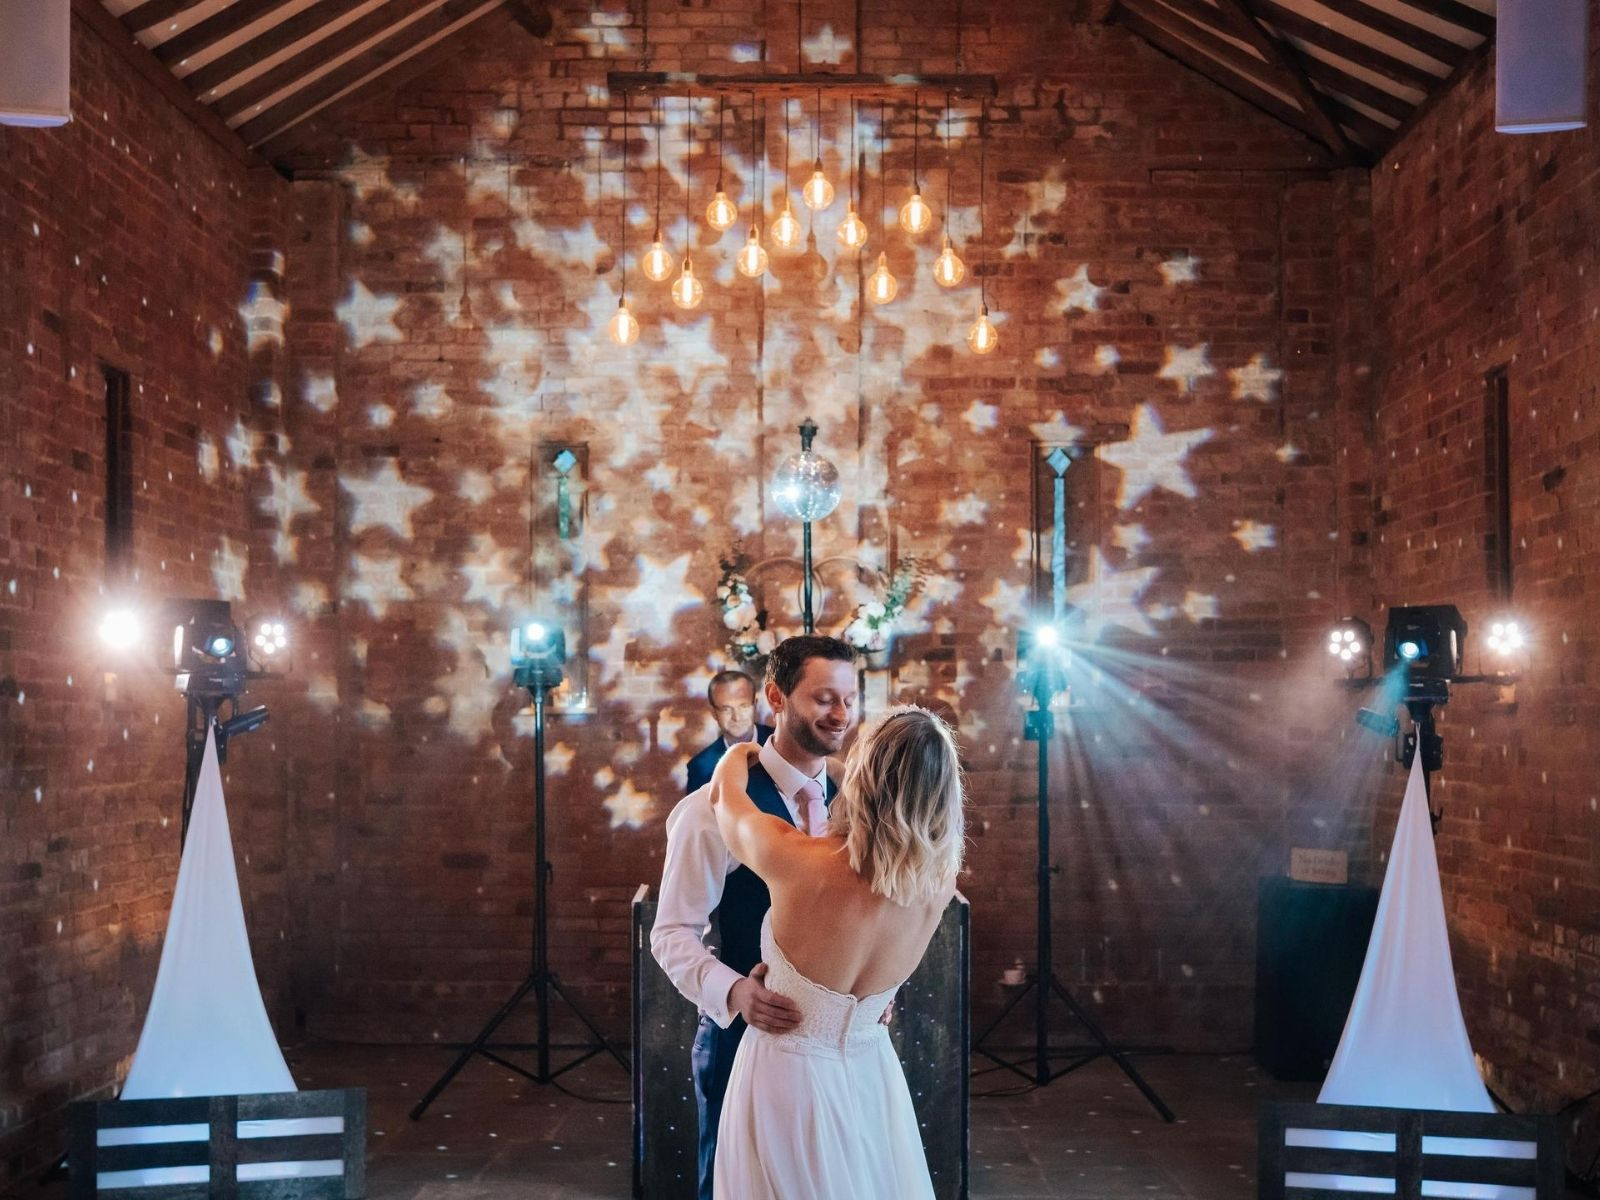 Couple sharing their first dance at relaxed barn wedding